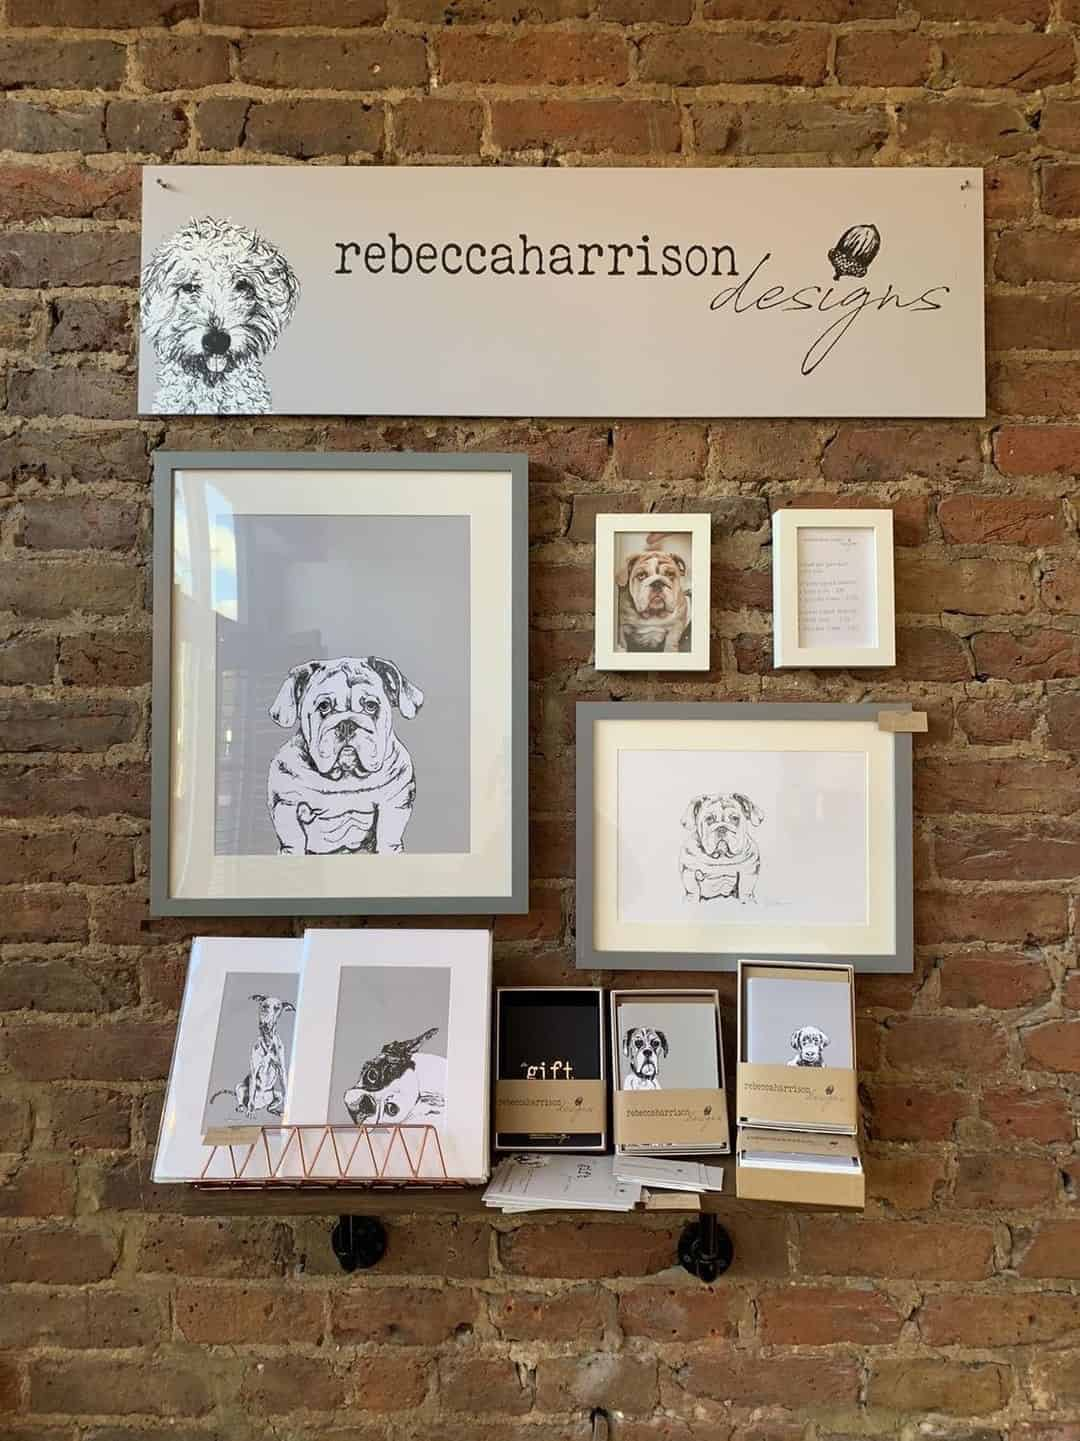 London Dog Portraits To Make You Smile - Rebecca Harrison Designs - Masters Touch Display